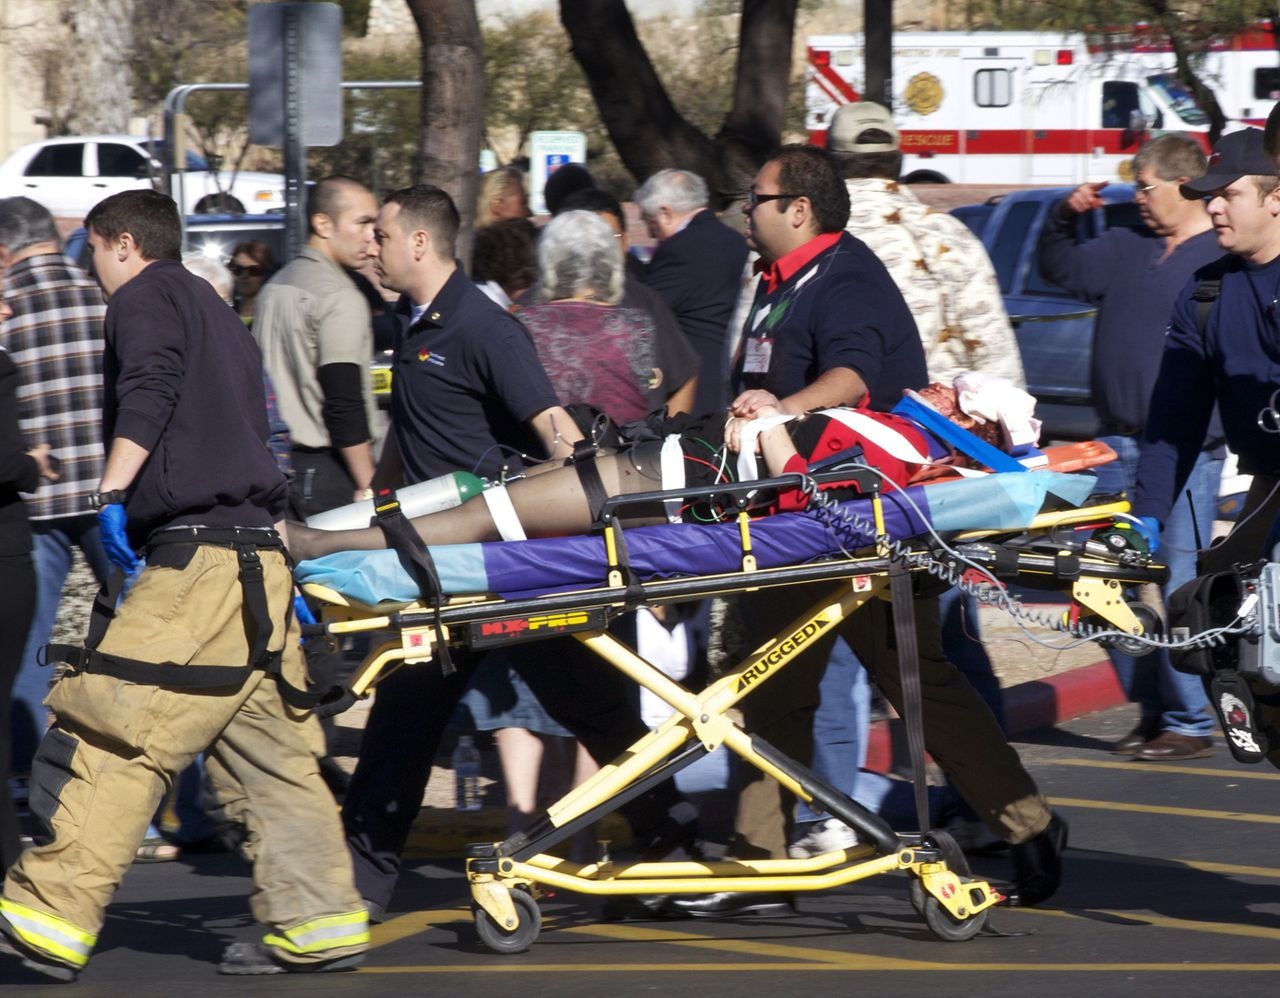 ** ADDS NAME OF VICTIM, REP. GABRIELLE GIFFORDS ** Emergency personnel use a stretcher to move Rep. Gabrielle Goffords, D-Ariz., after she was shot in the head outside a shopping center in Tucson, Ariz. on Saturday, Jan. 8, 2011. (AP Photo/James Palka)